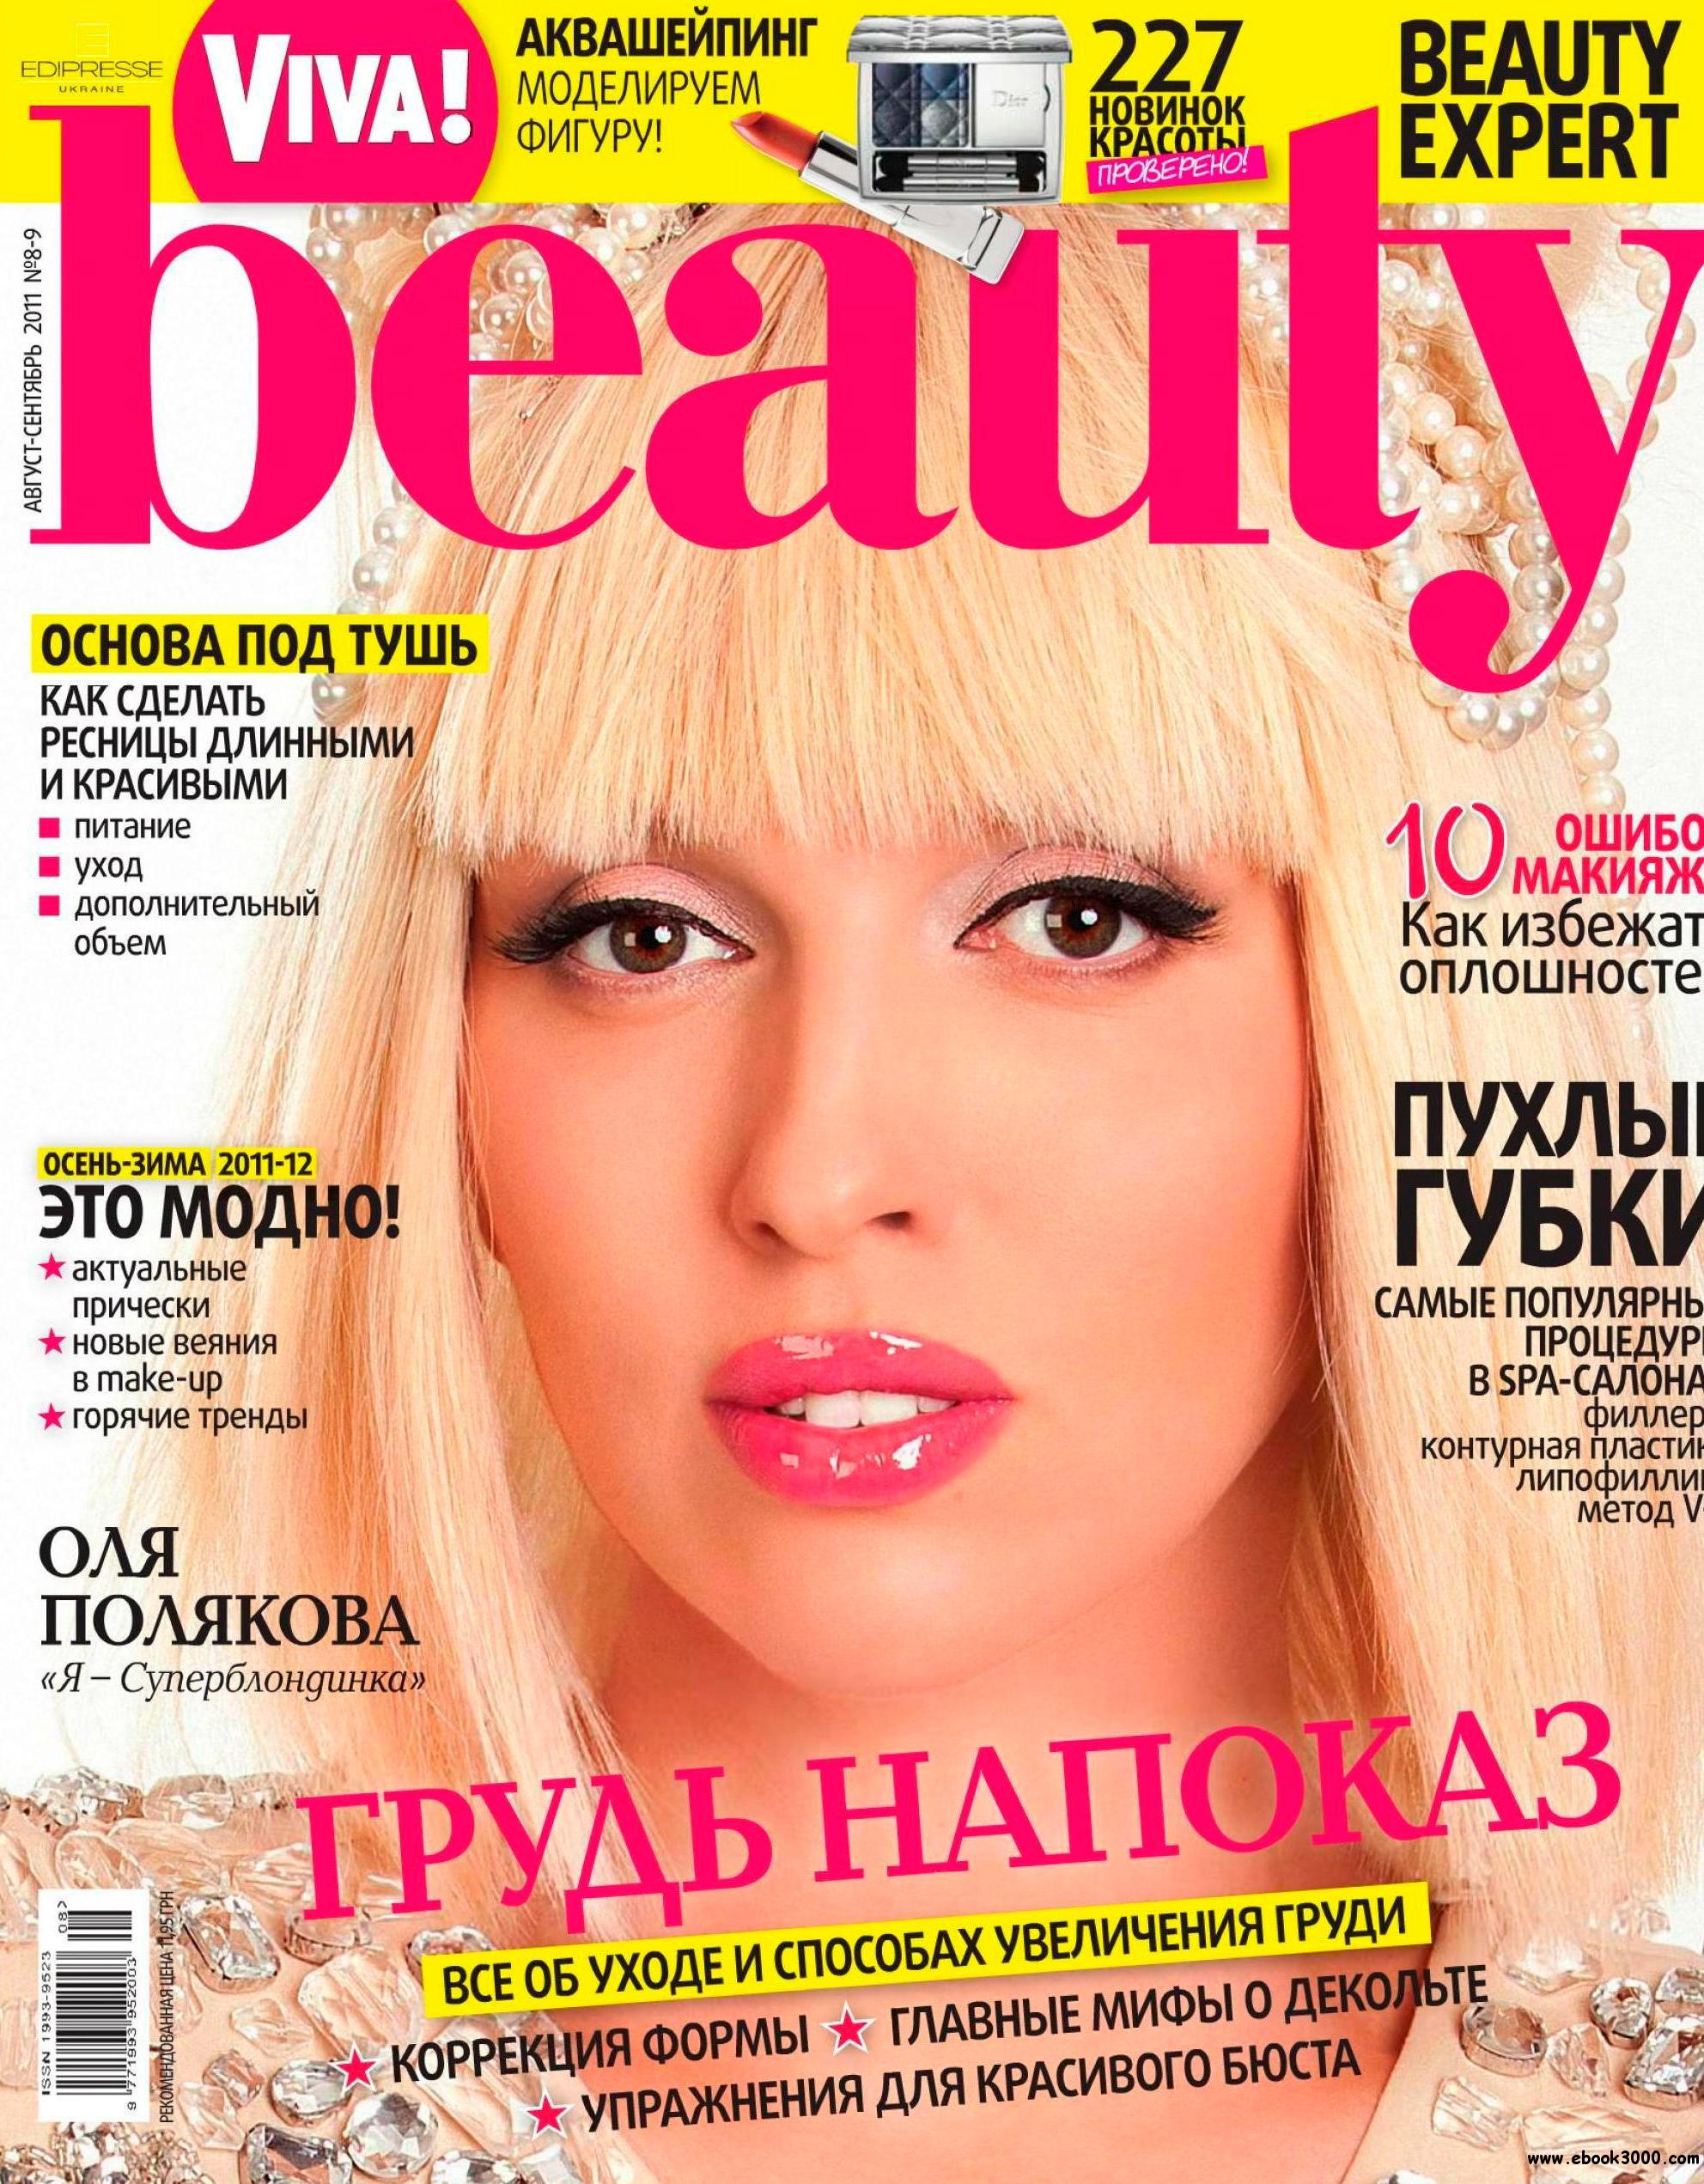 Viva Beauty Russia Teen Magazine August - September 2011 Download FREE